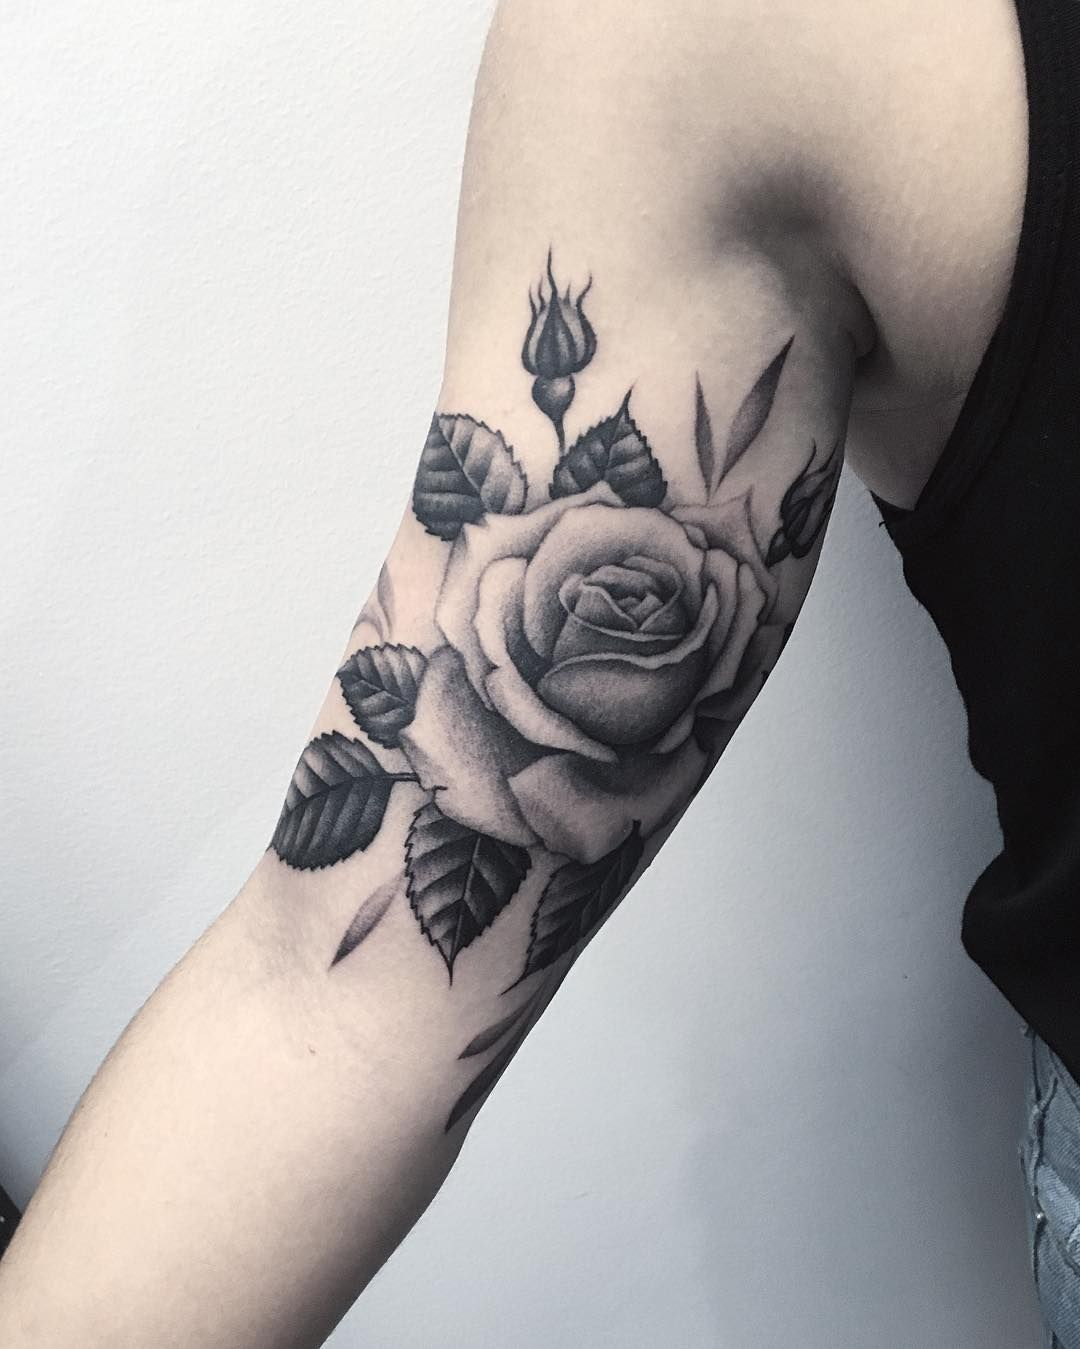 Tattoo Ideas With Roses: 27 Inspiring Rose Tattoos Designs